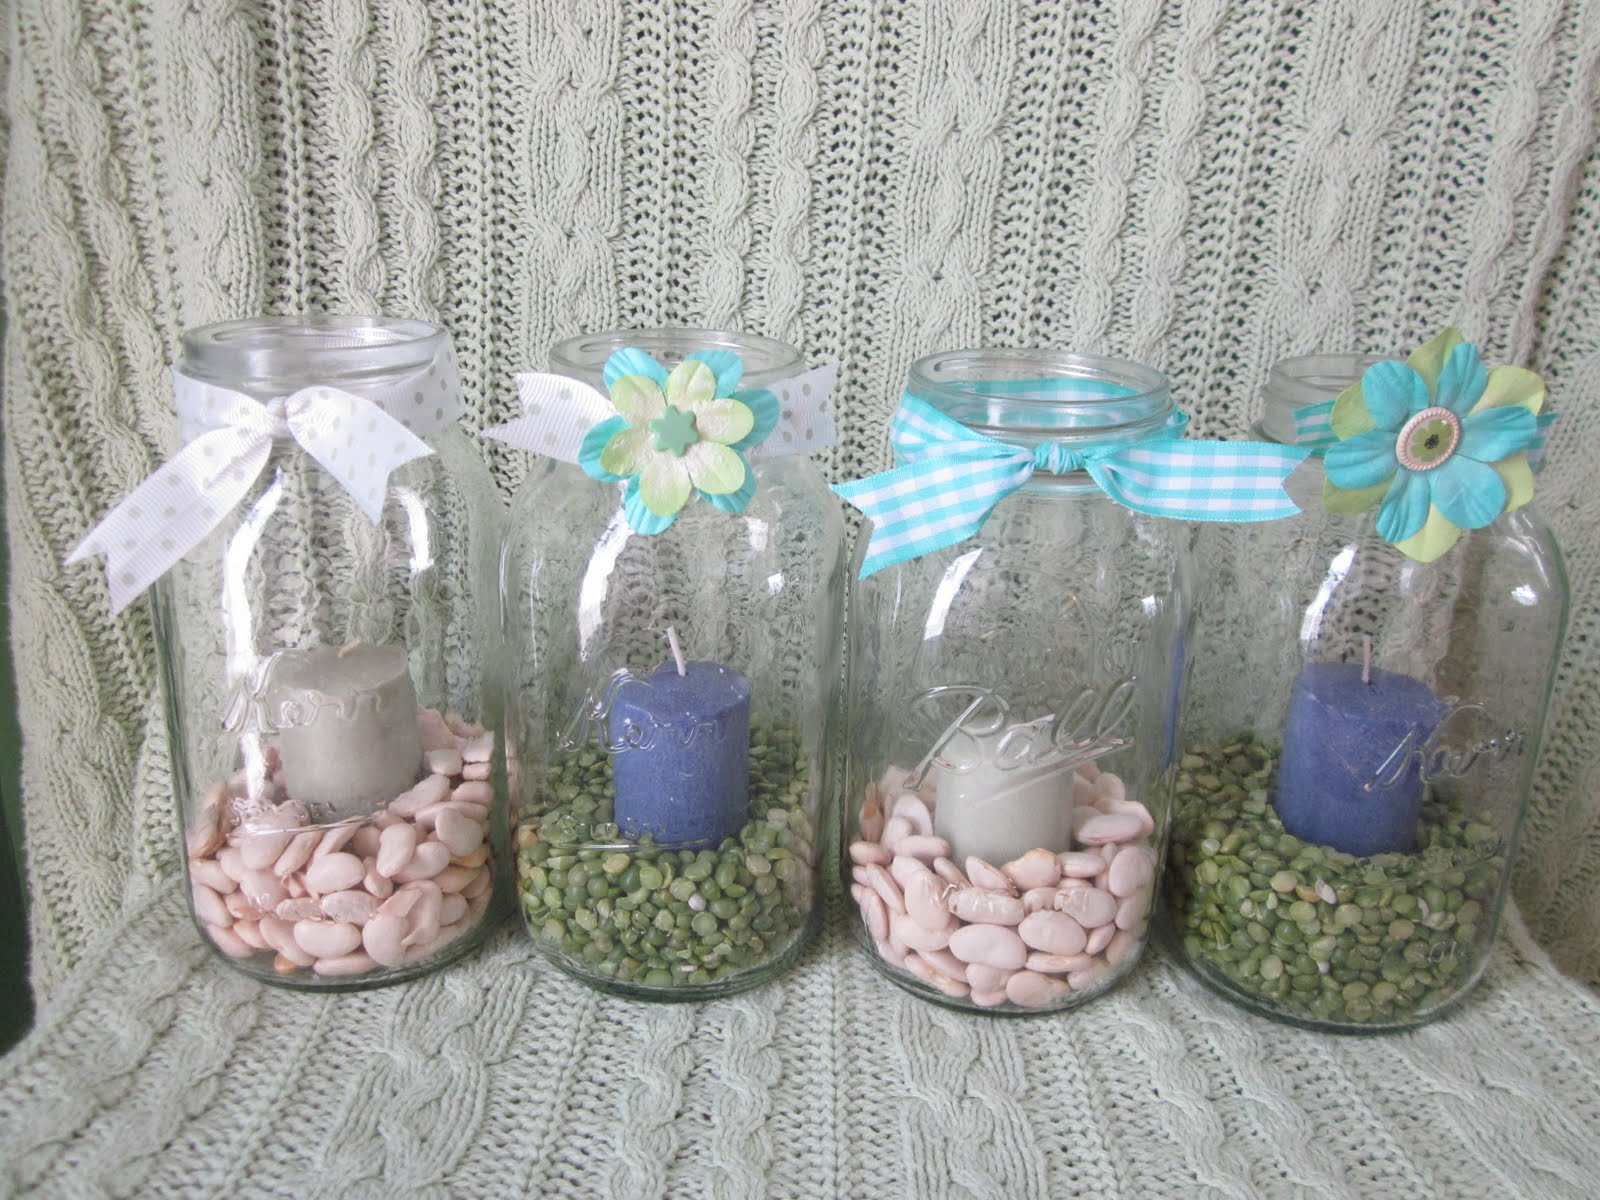 more canning jar decor i filled these with dry split peas and lima beans added candles and bows and hot glued some paper flowers on a couple of the